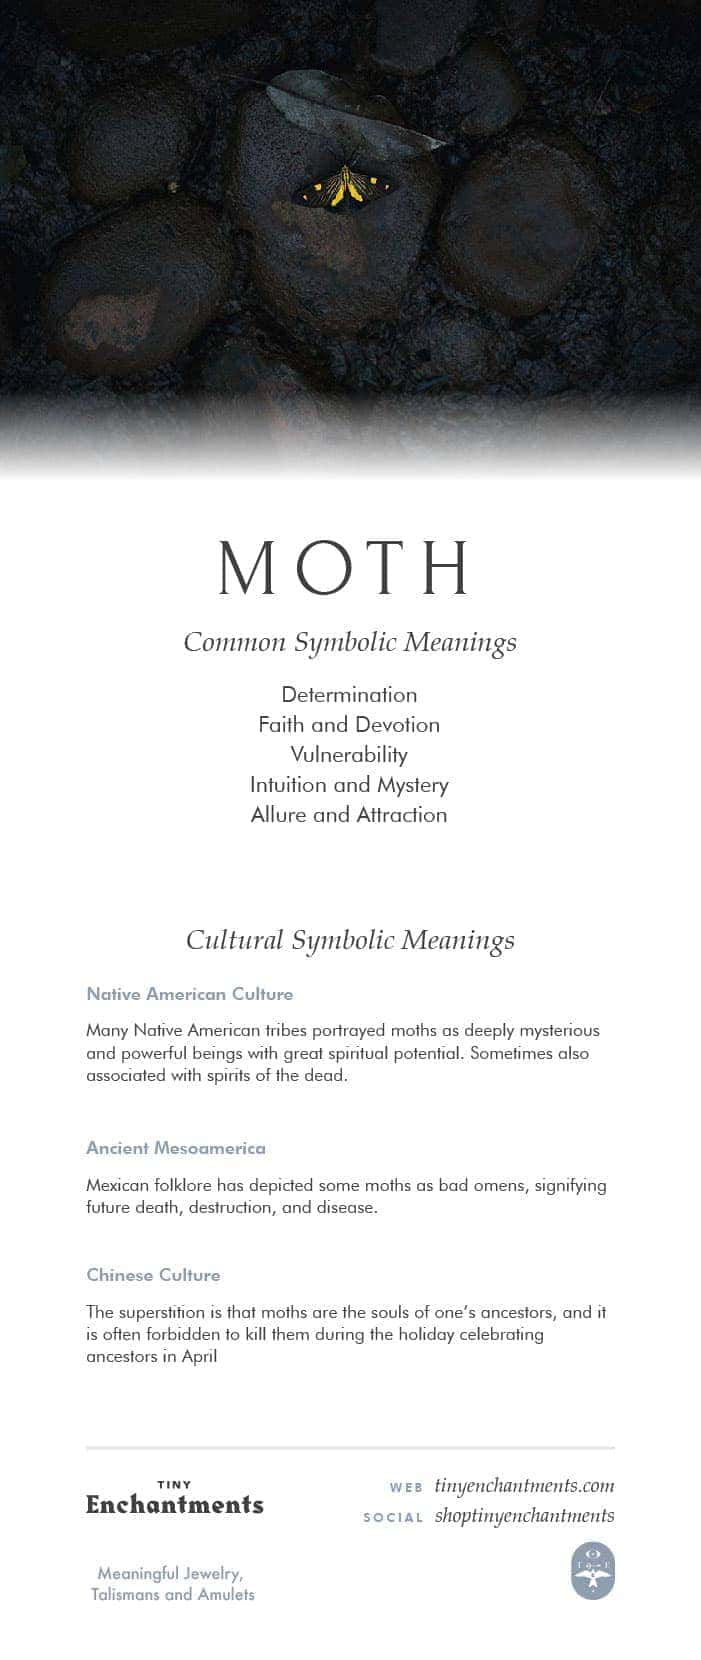 Moth Symbolism - Moth Dream Meaning, Moth Mythology and Moth Spirit Animal Meanings Full Infographic